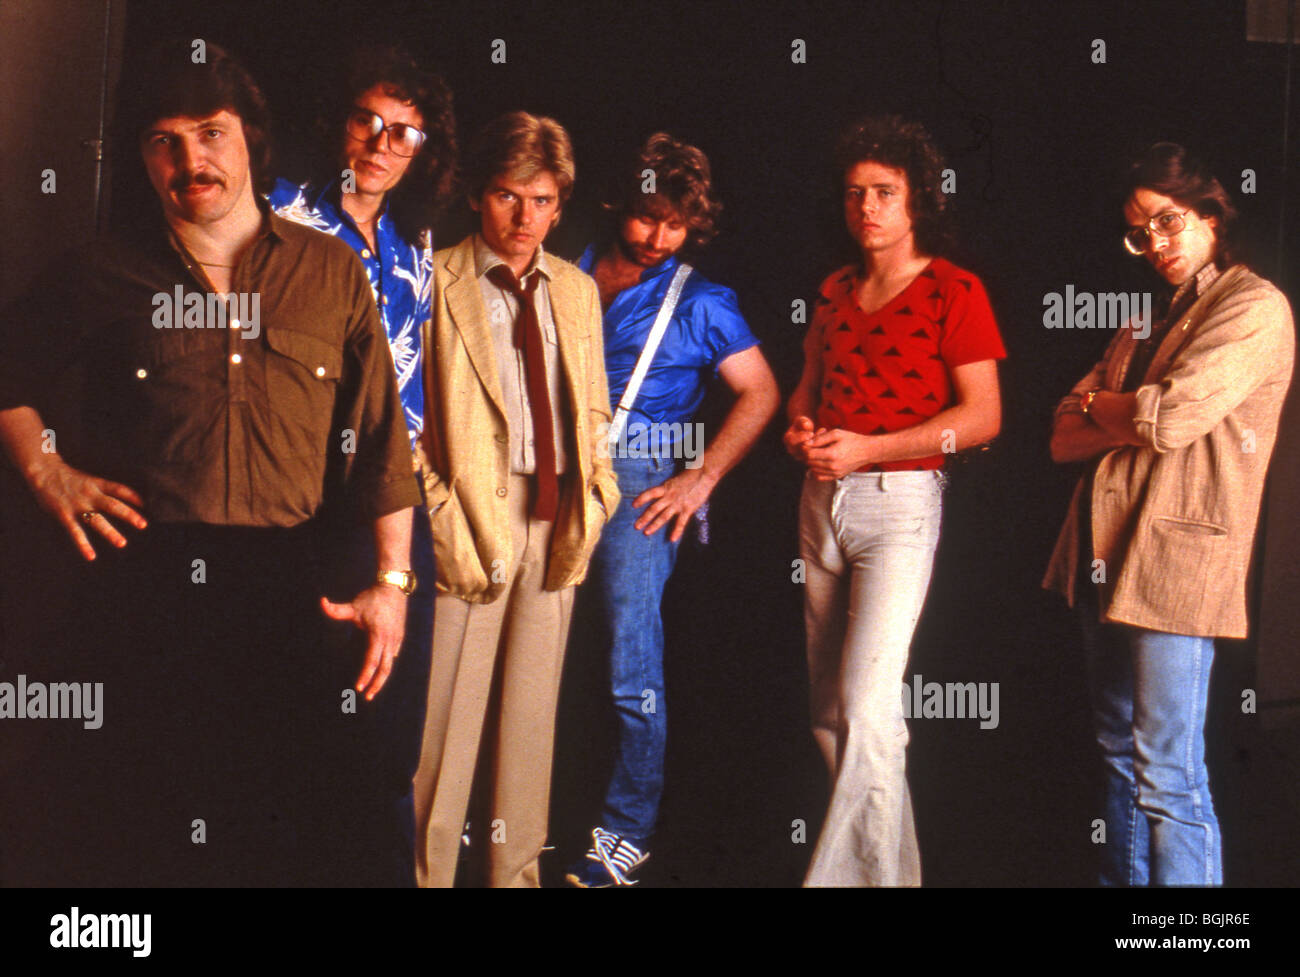 Toto Band Stock Photos & Toto Band Stock Images - Alamy